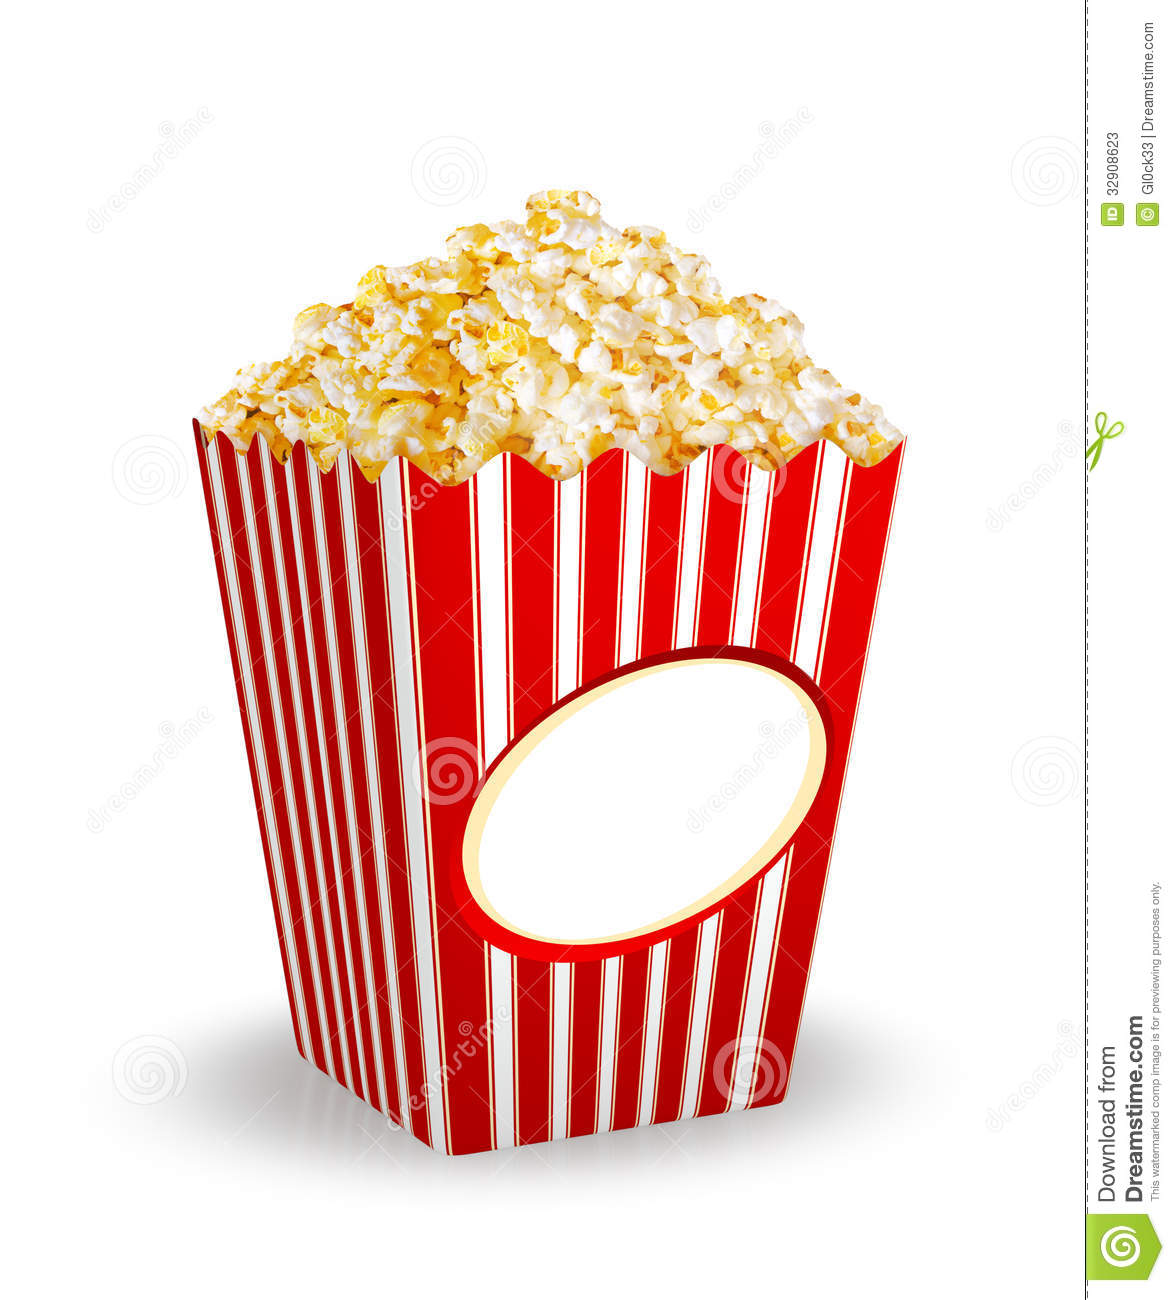 Box Of Popcorn Stock Photos - Image: 32908623